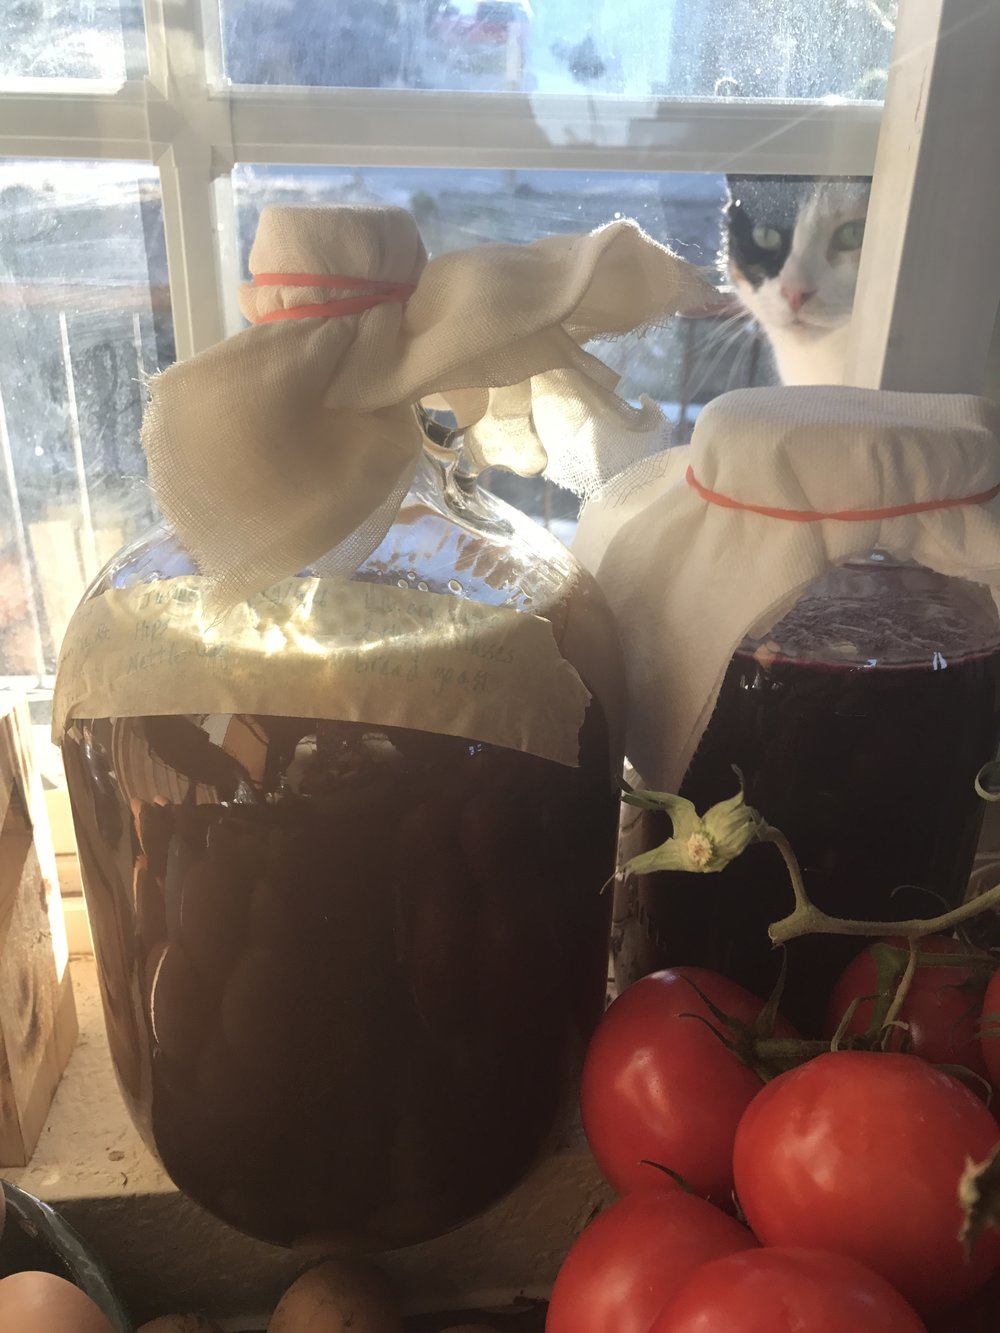 Here it is, sitting in the window sill, along with some beet kvass, tomatoes, & eggs.  My cat, Harriet, is wondering what on earth I am doing now! :-)